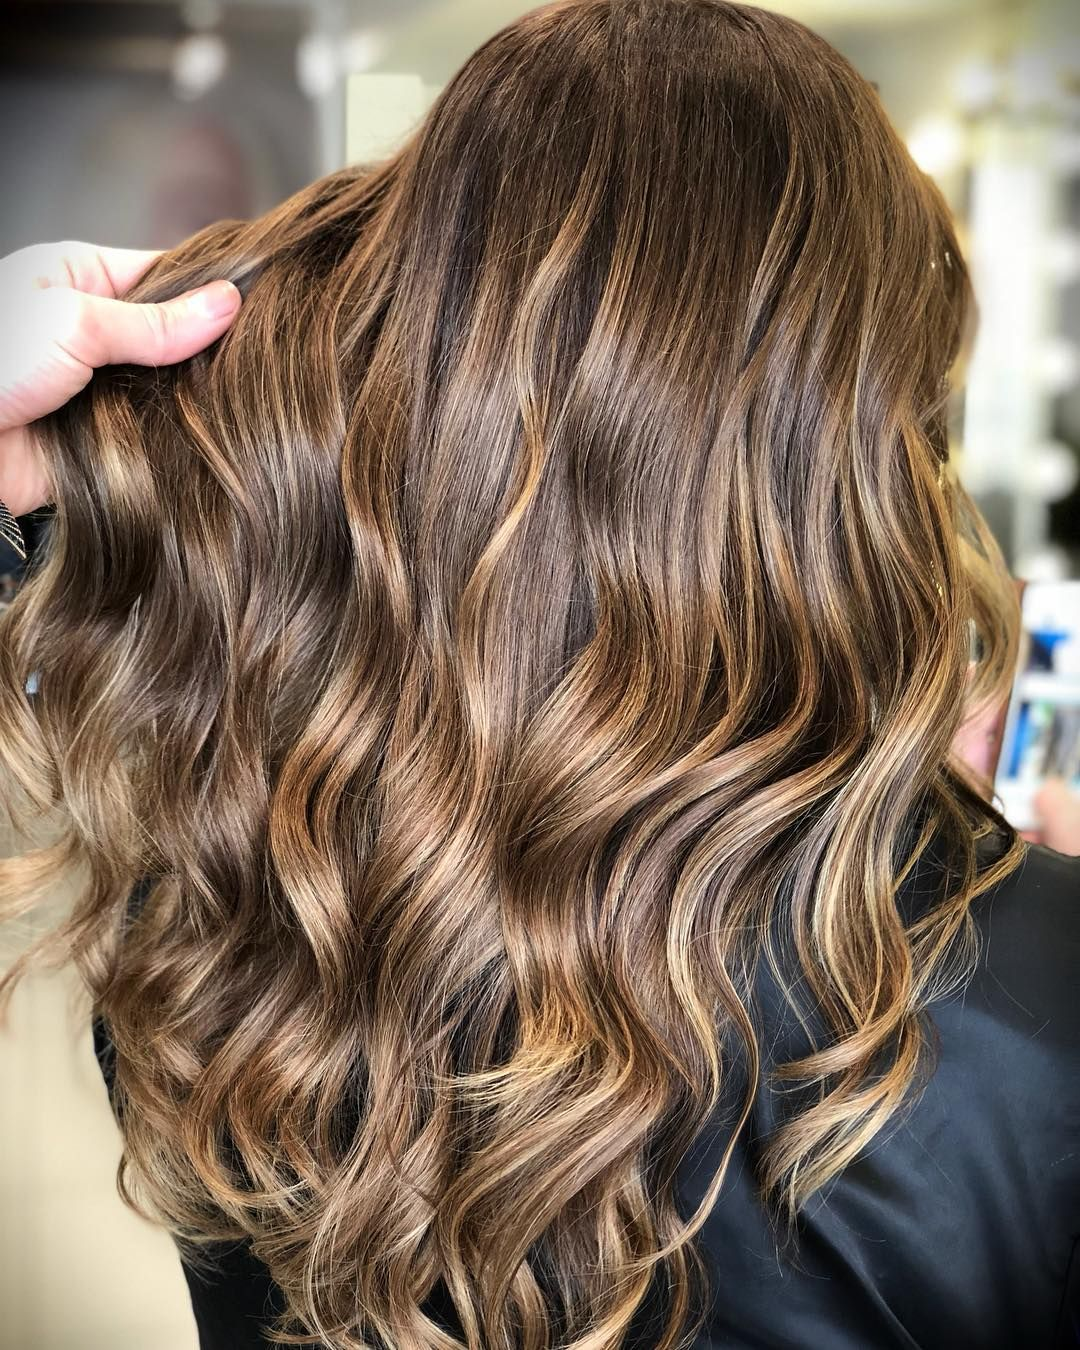 Illuminated Brunette Is The Radiant New Way To Brighten Up Brown Hair Ombre Hair Blonde Ombre Hair Brown Ombre Hair